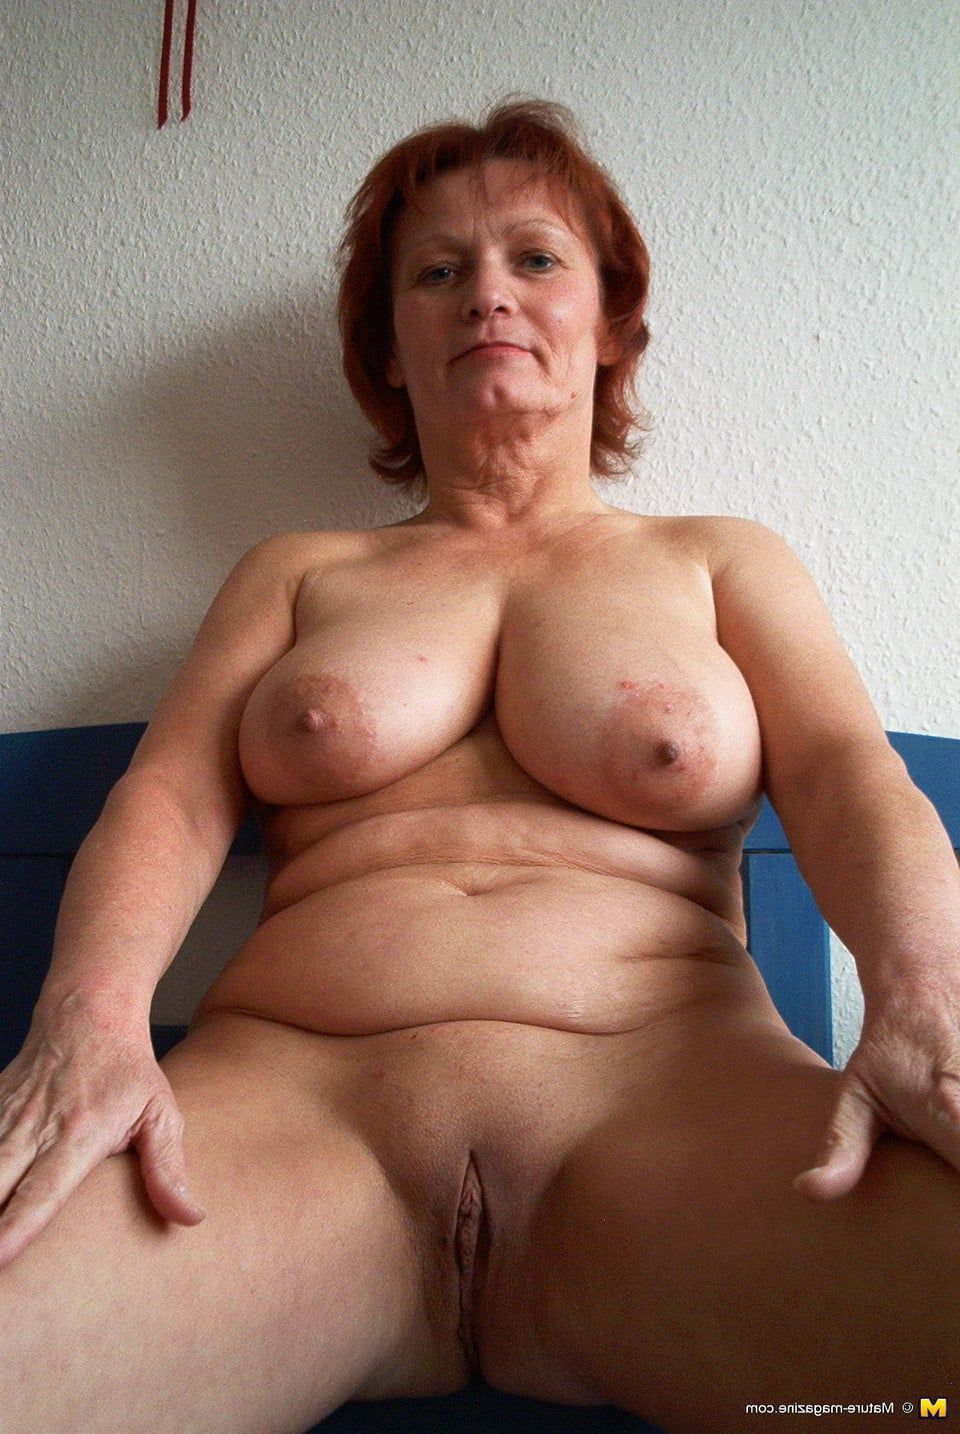 nudes-very-old-woman-sextime-jenni